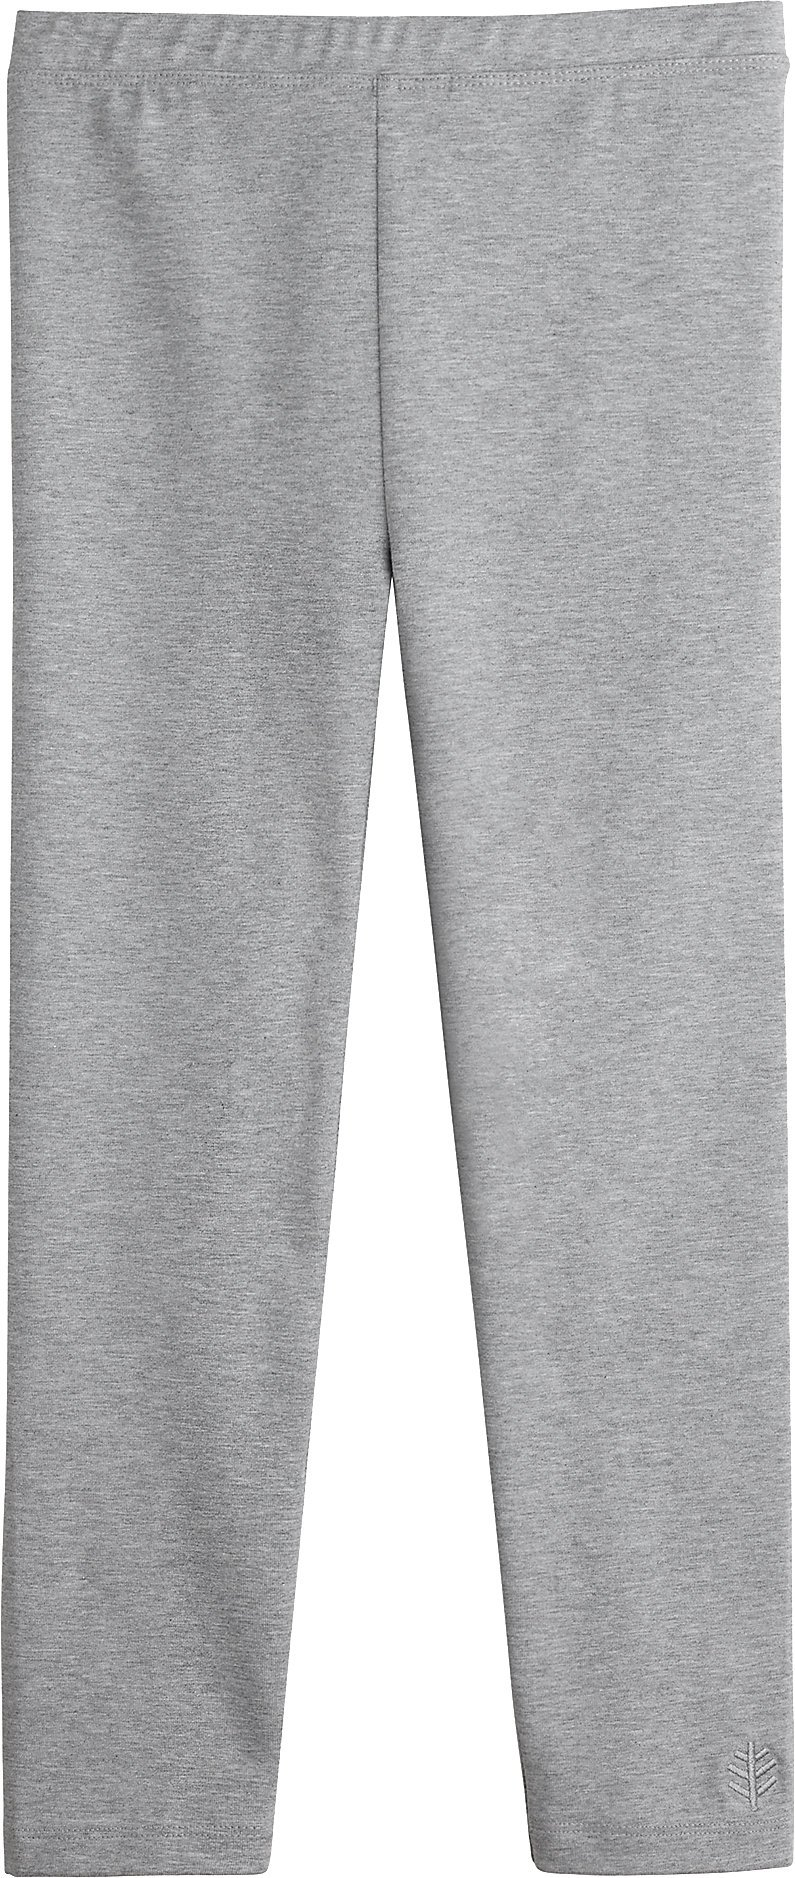 Coolibar UPF 50+ Girls' Summer Leggings - Sun Protective (Medium- Grey Heather)